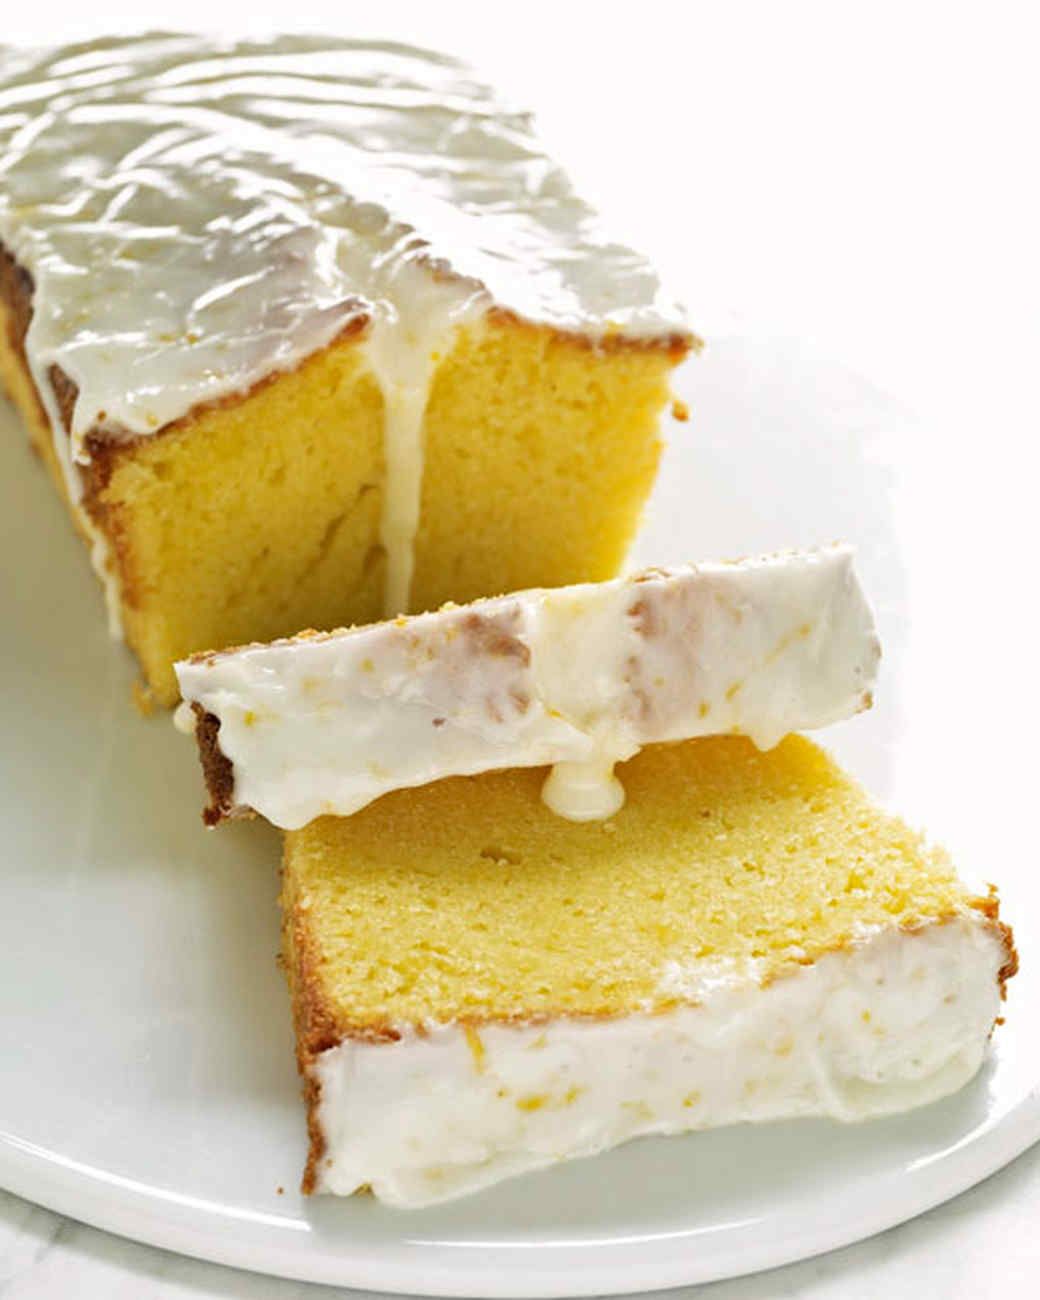 Martha Stewart Baked Cream Cheese Pound Cake